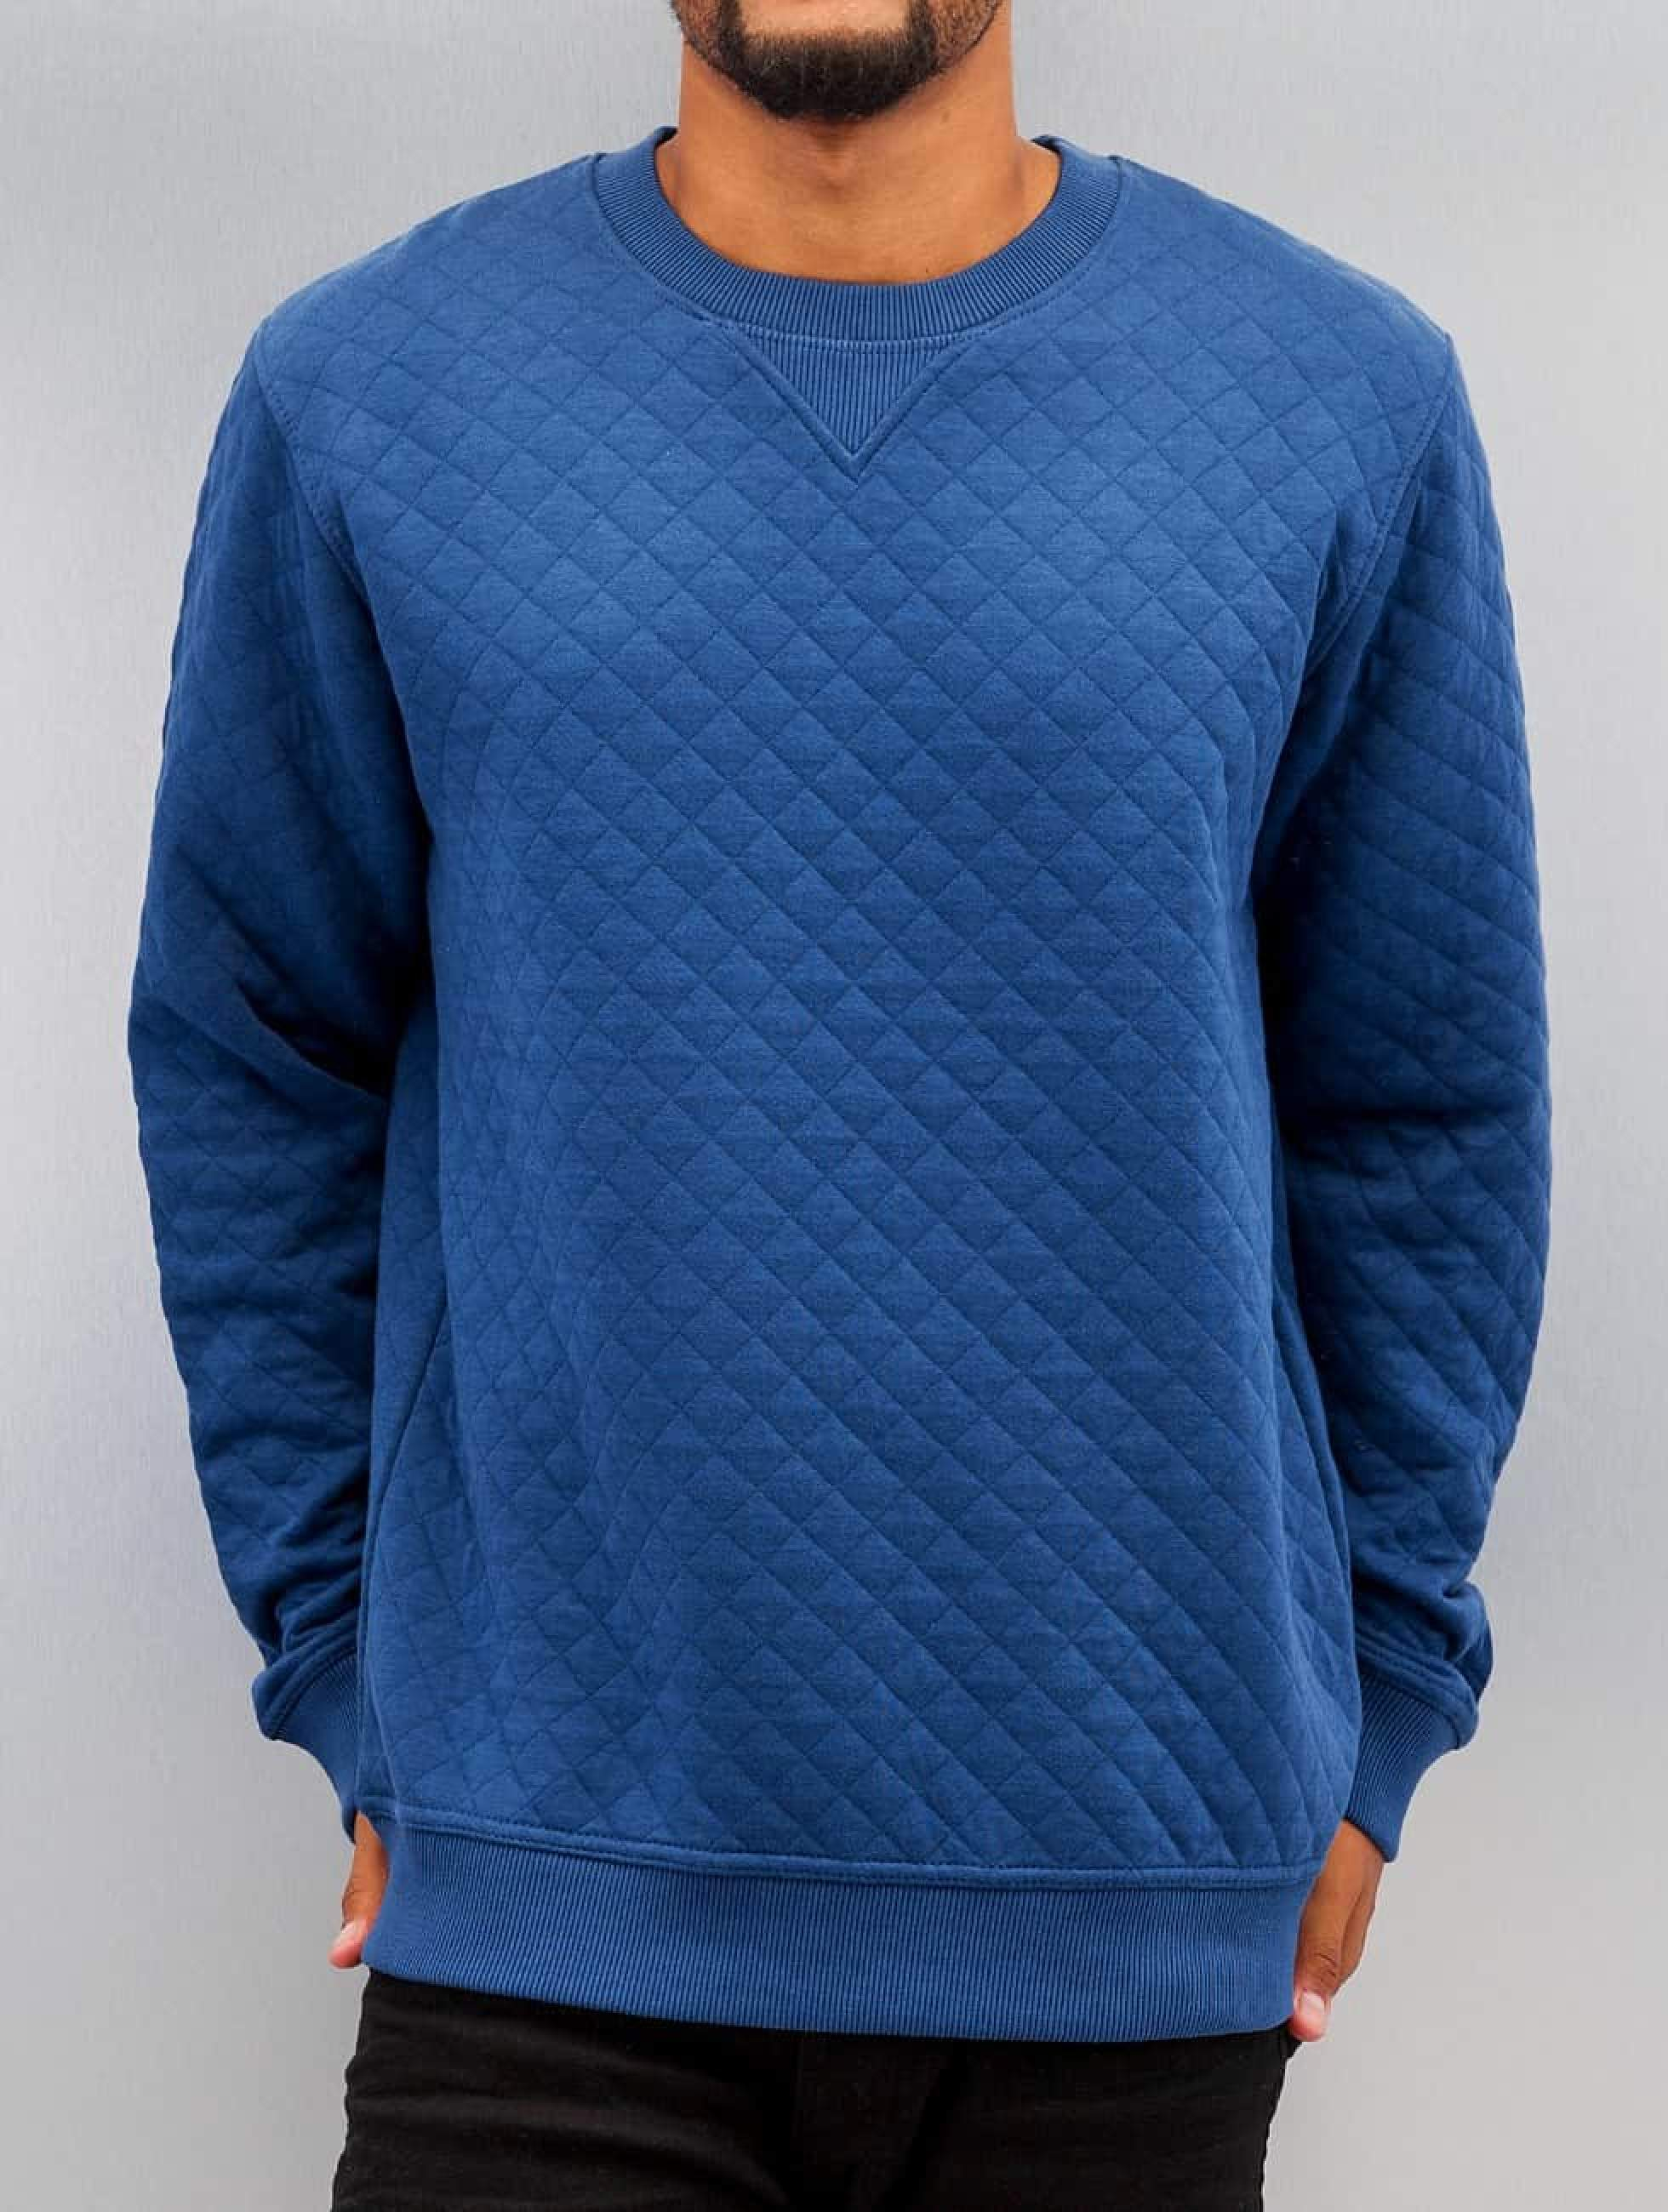 Cazzy Clang / Jumper Honeycomb in blue L